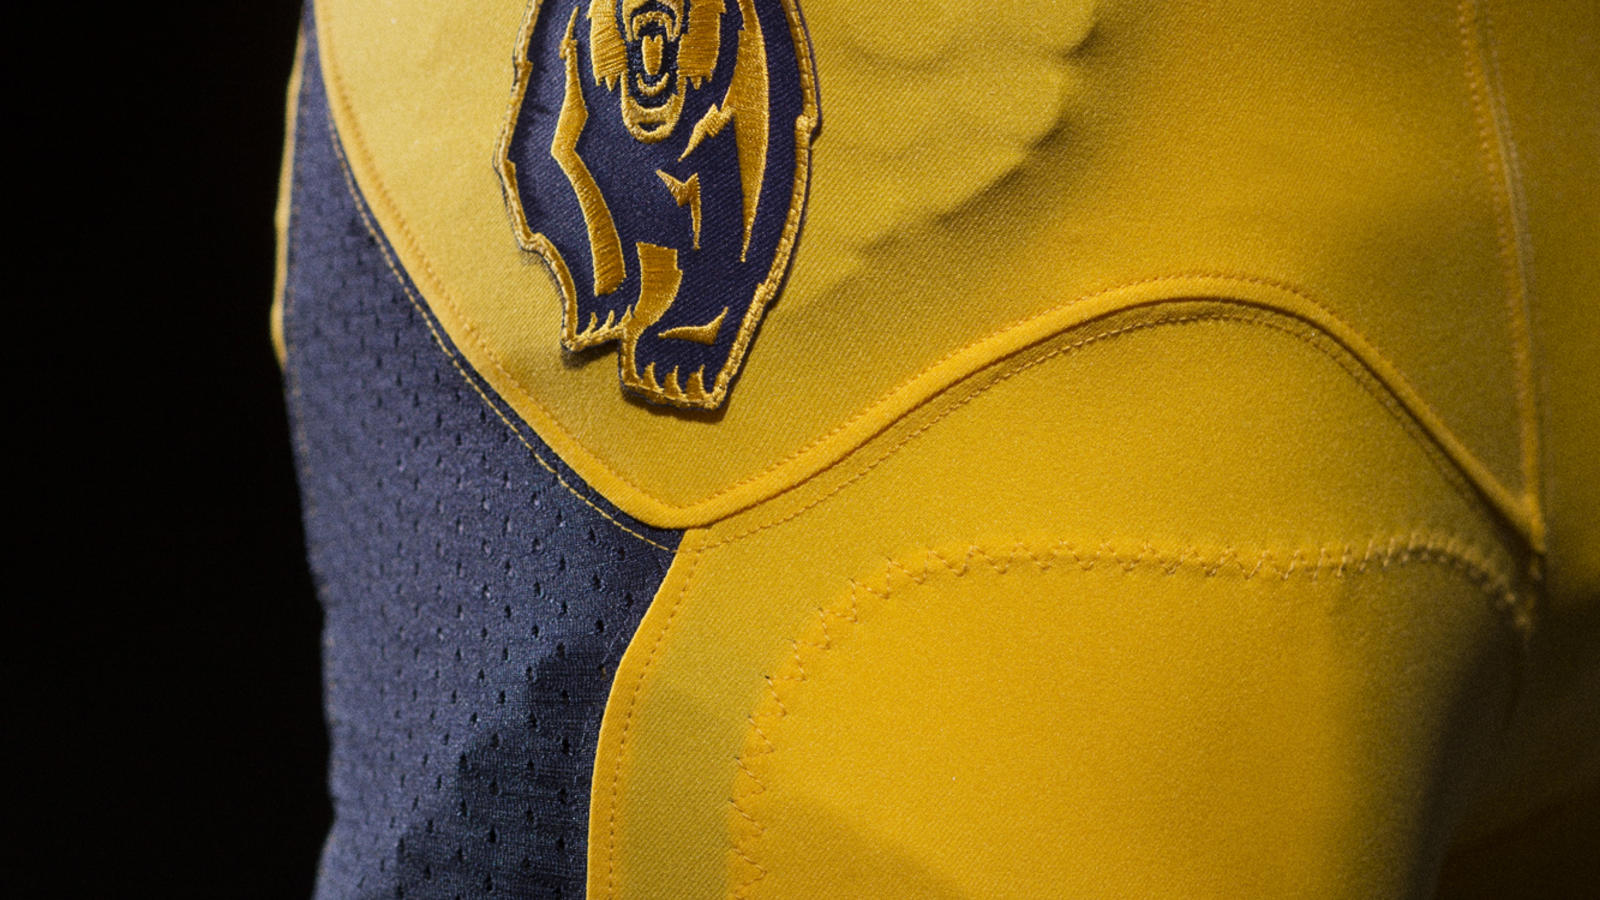 nike-cal-brand-identity-football-detail-02